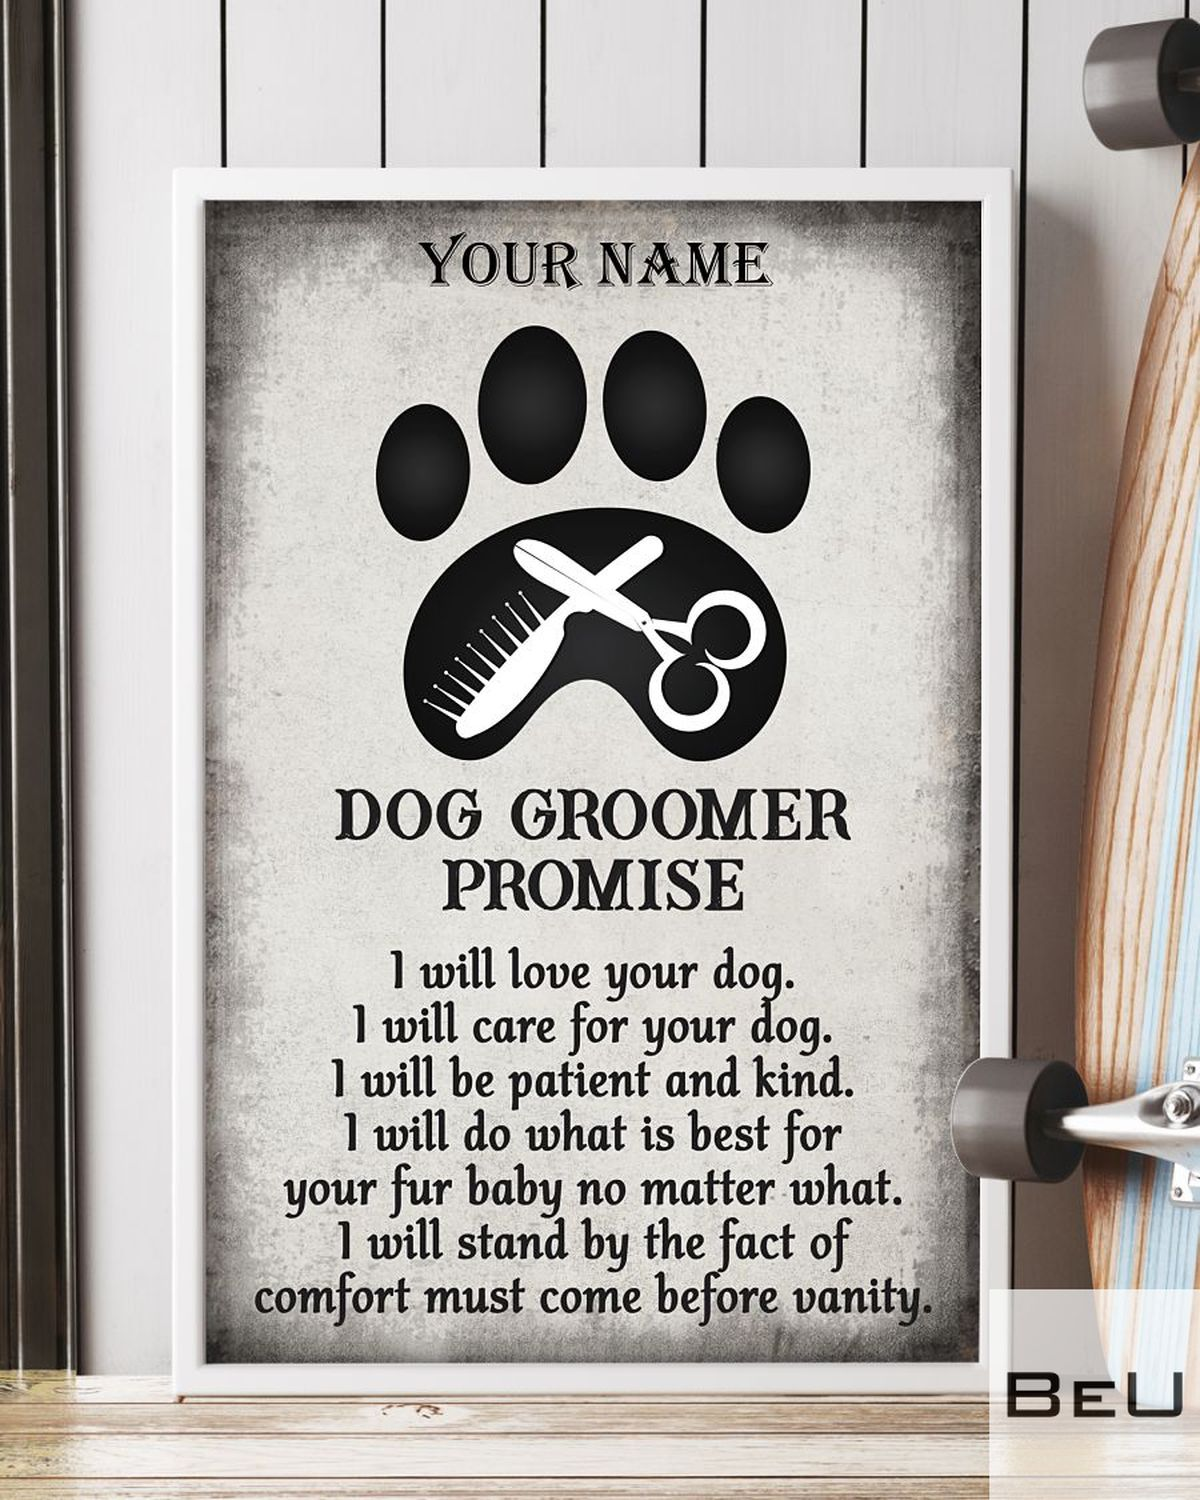 Personalized Dog Groomer Promise I Will Love Your Dog Posterc